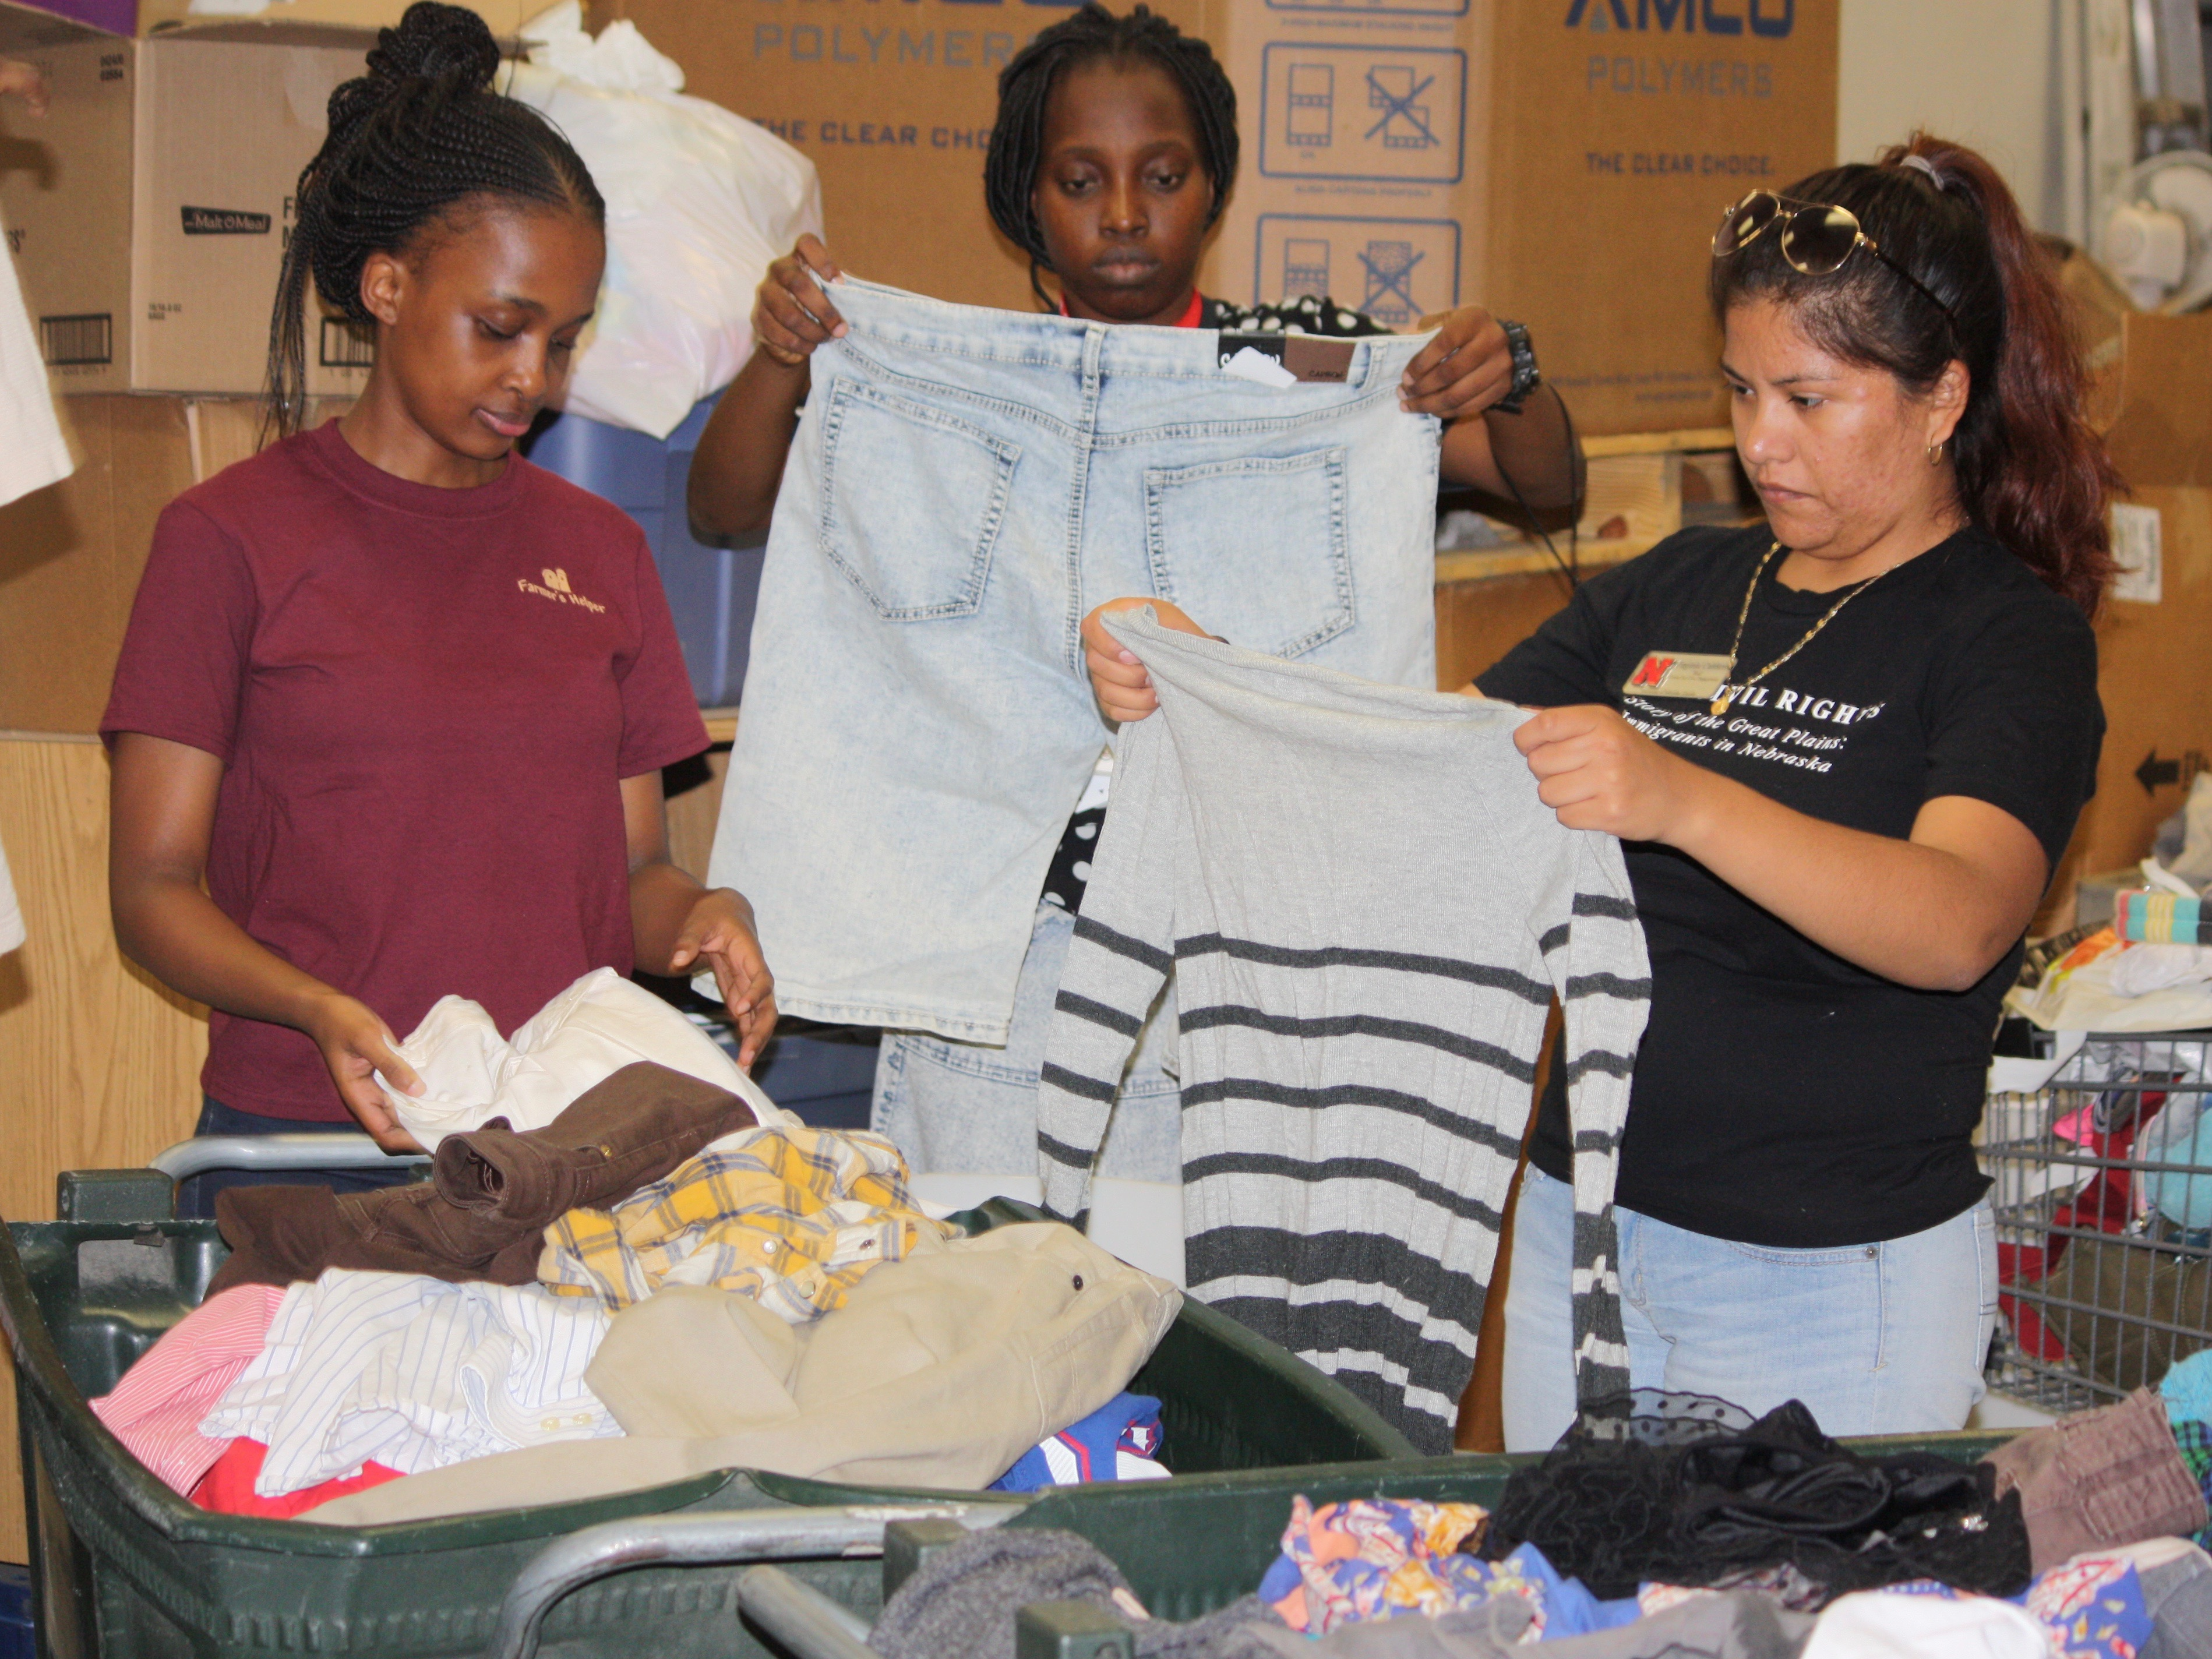 Participants in the Mandela Fellows program sort donations to the Homeless Prevention Center.